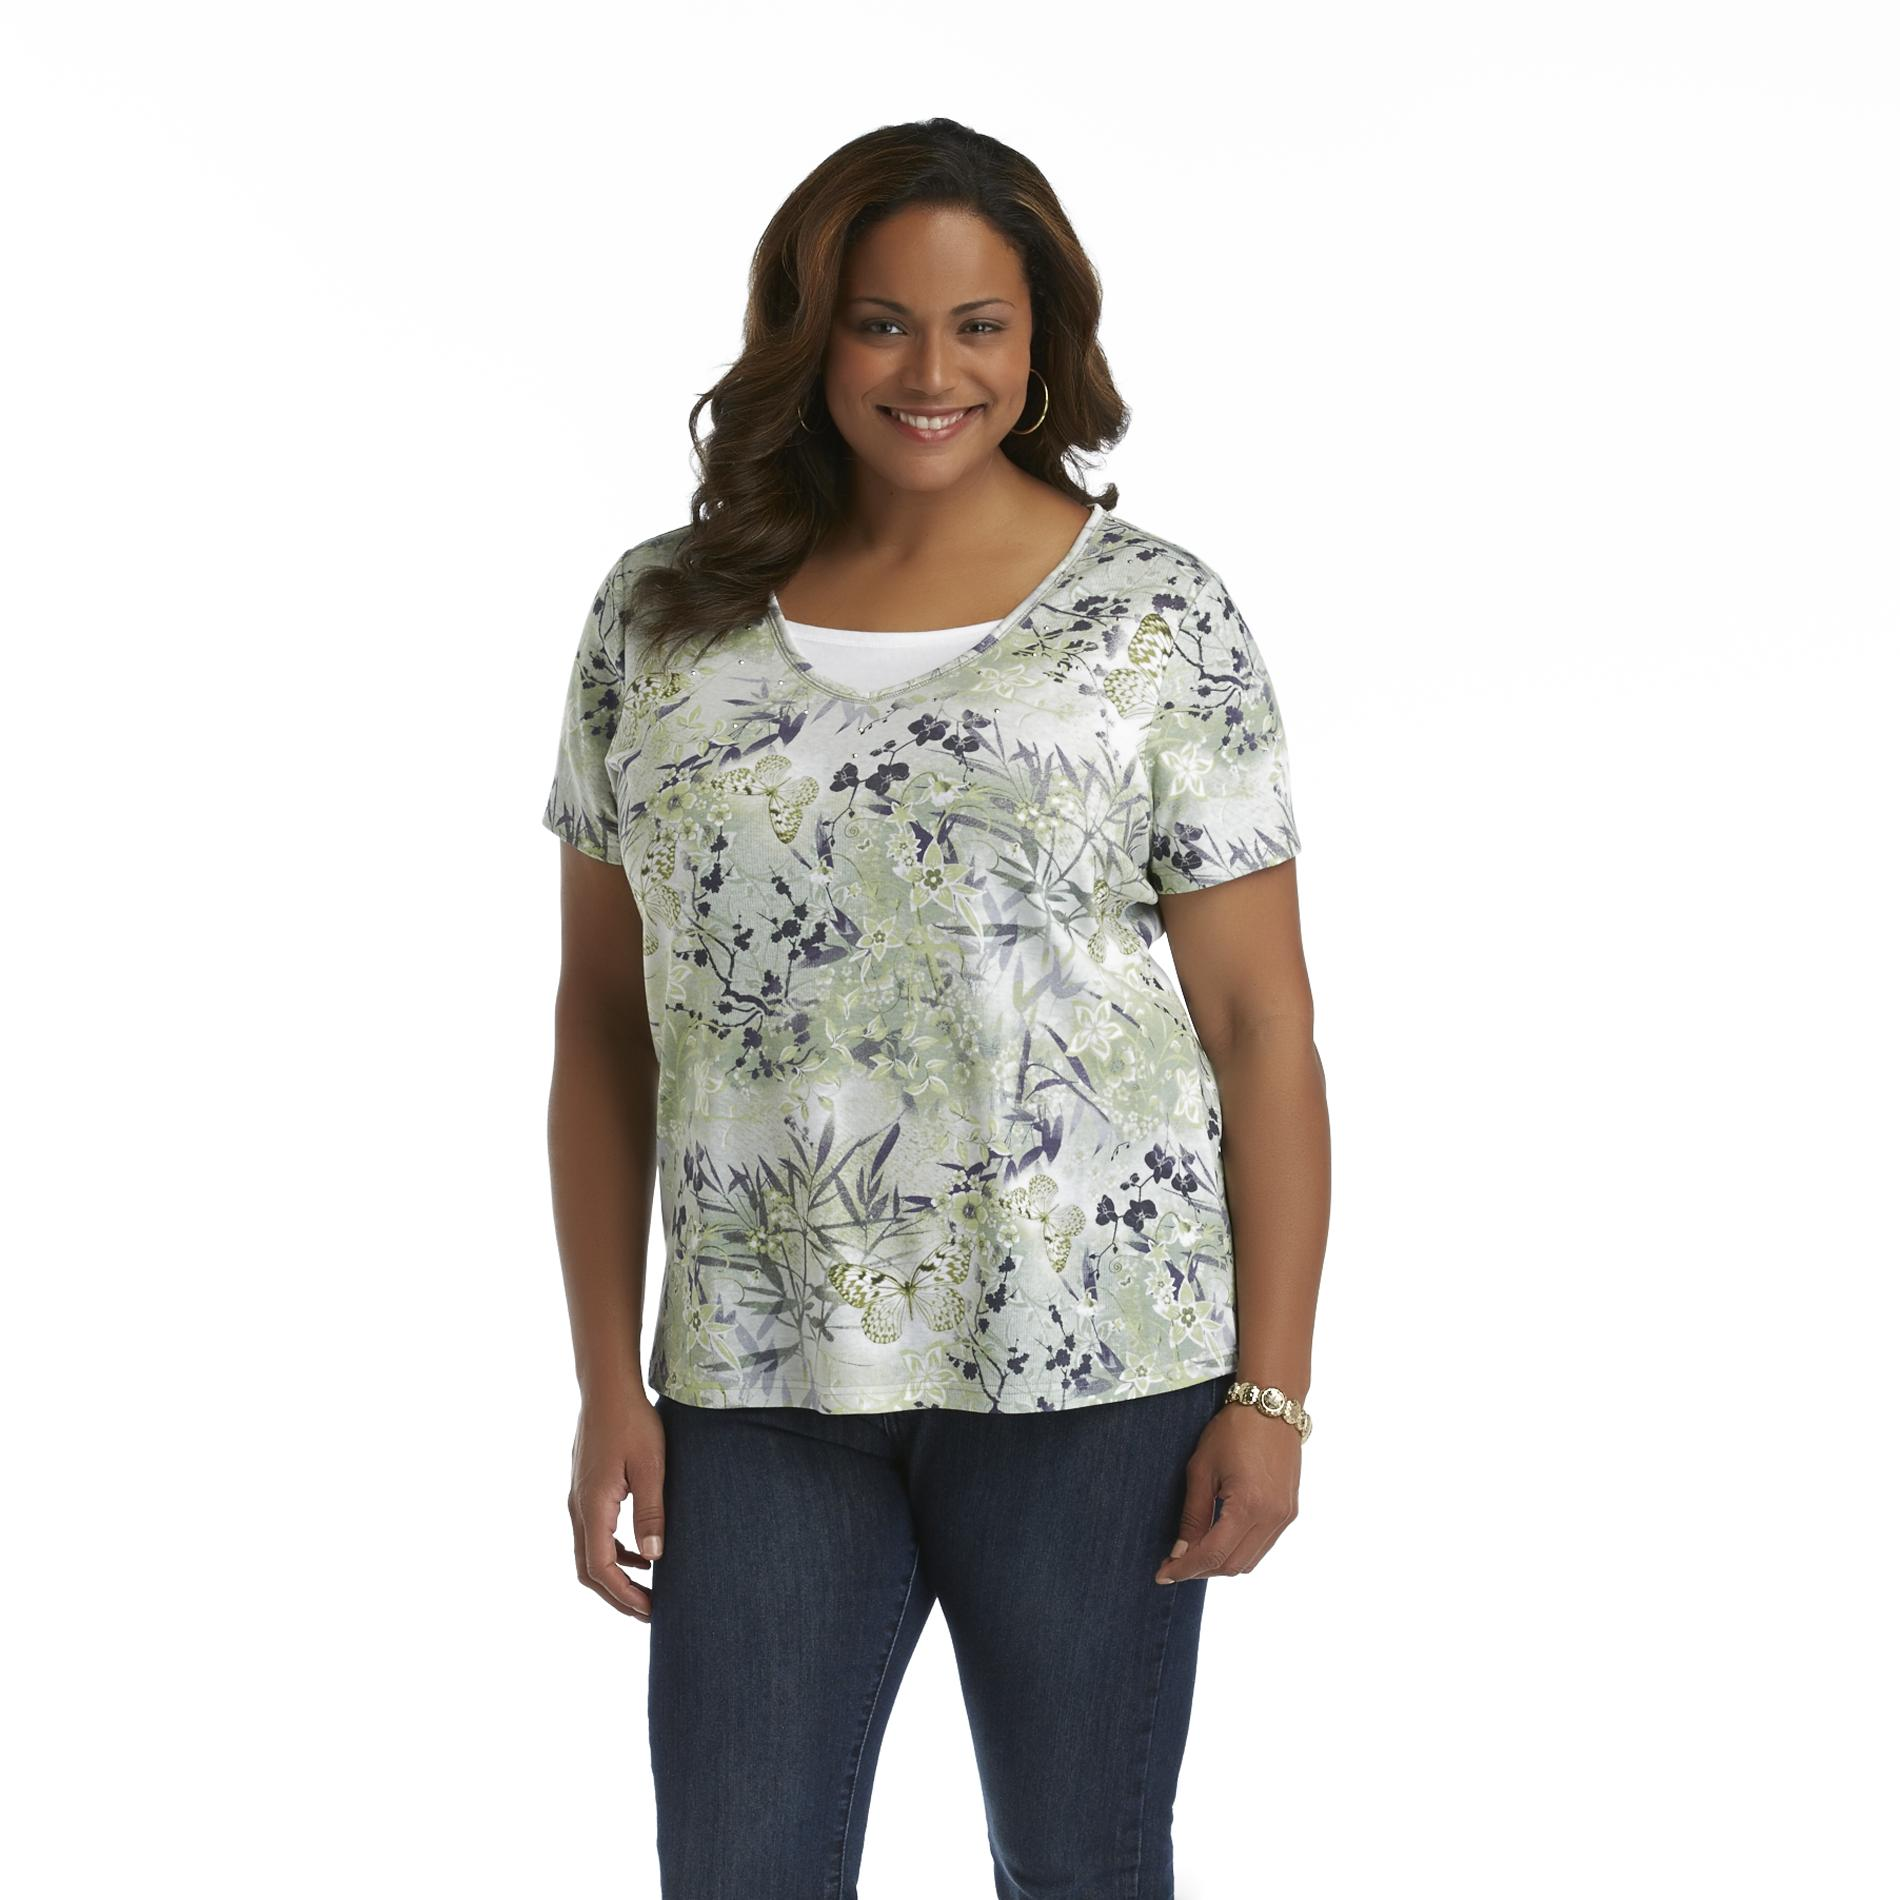 Basic Editions Women's Plus Layered V-Neck Top - Floral & Butterfly at Kmart.com